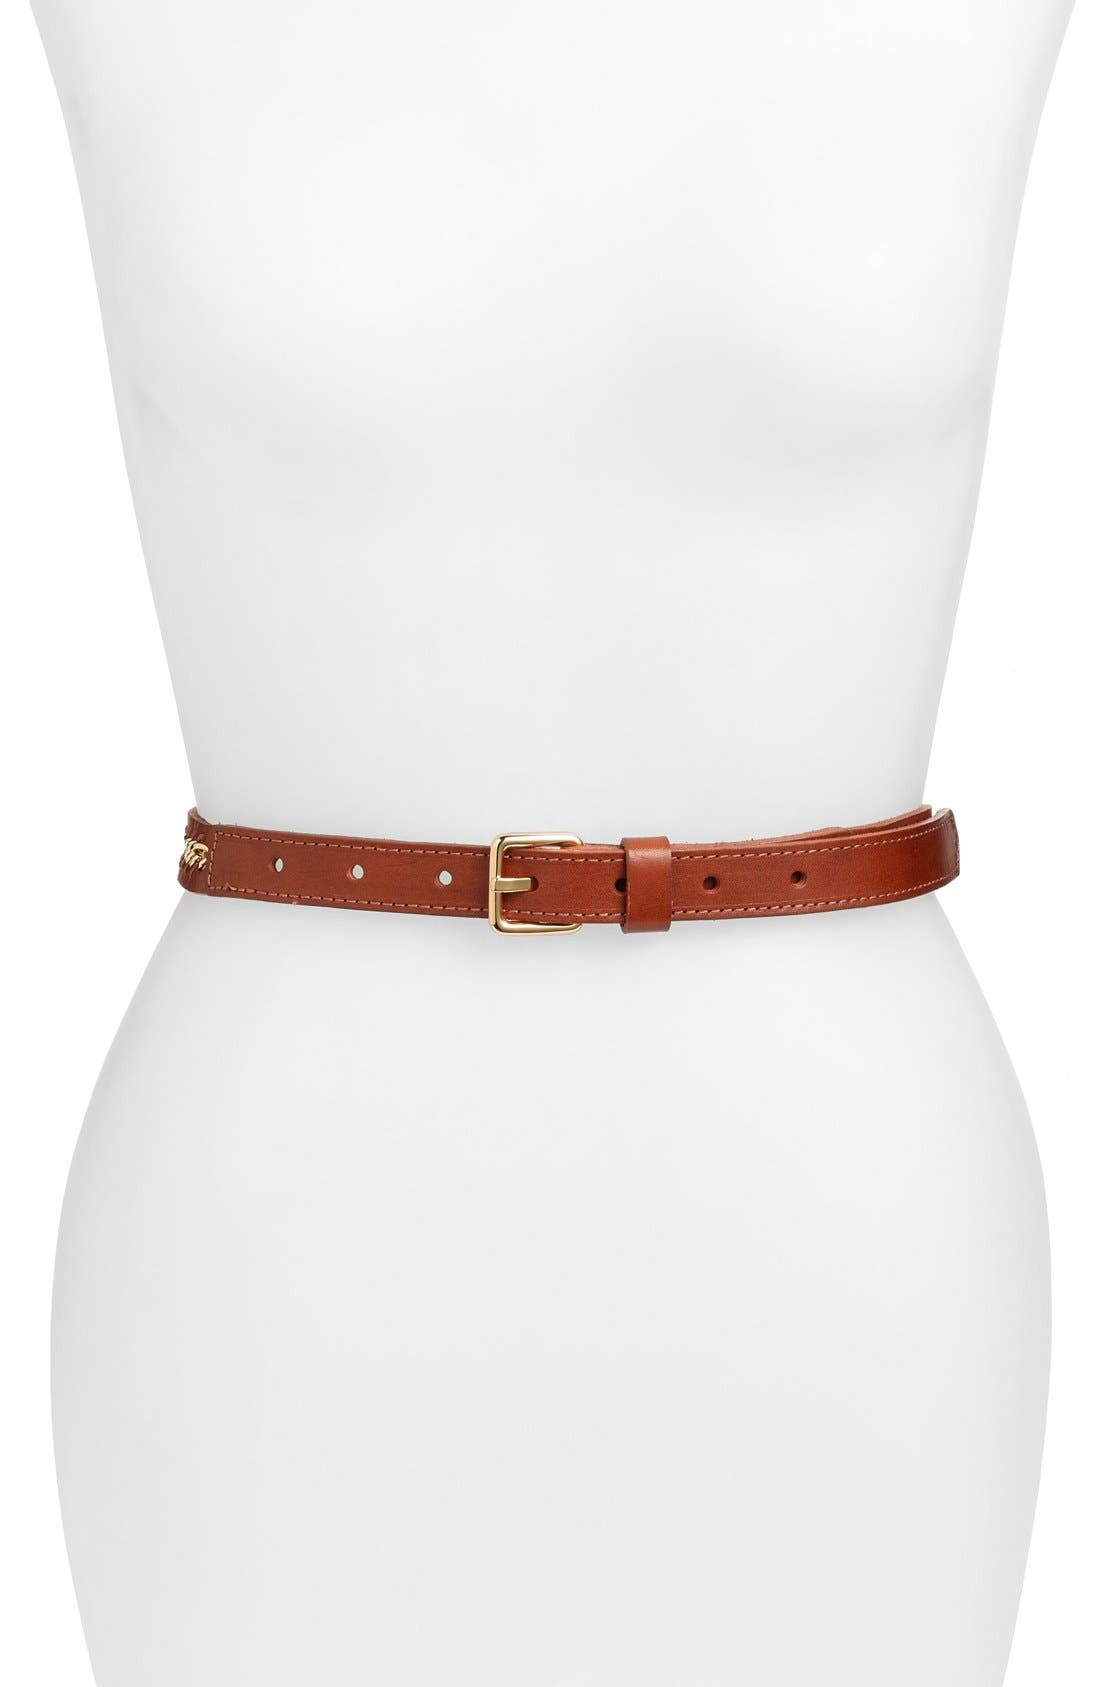 Rebecca Minkoff 'Gigi' Calfskin Leather Belt